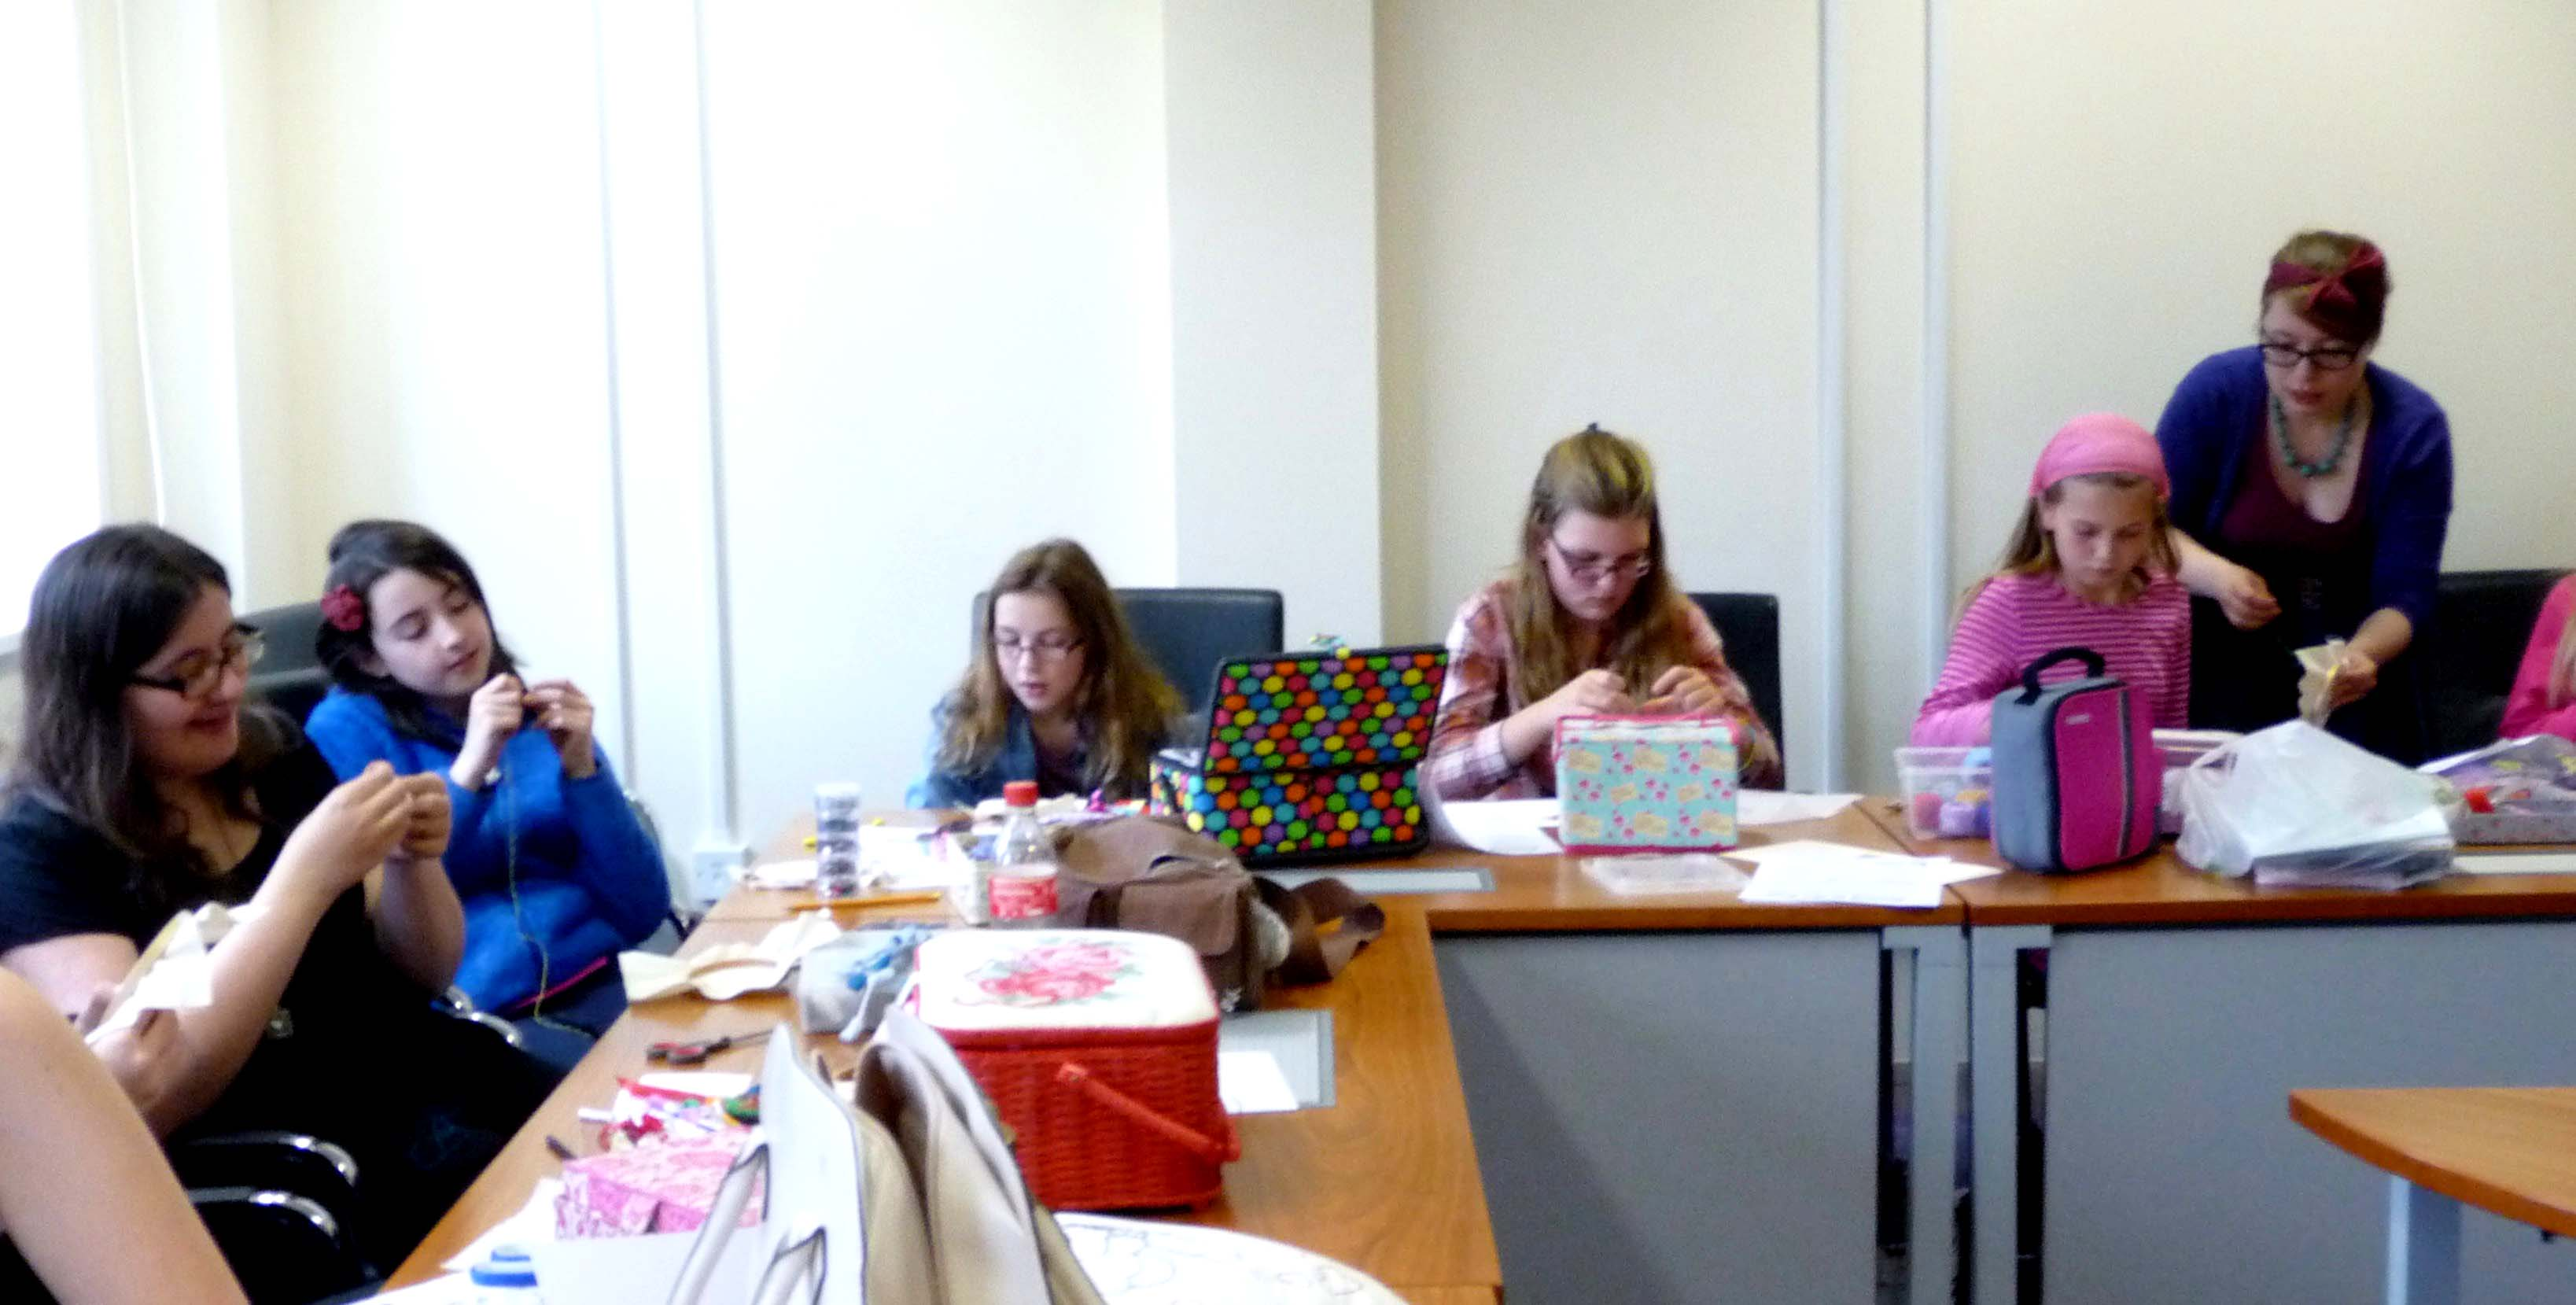 the girls are working hard on their embroideries, assisted by Becky Waite